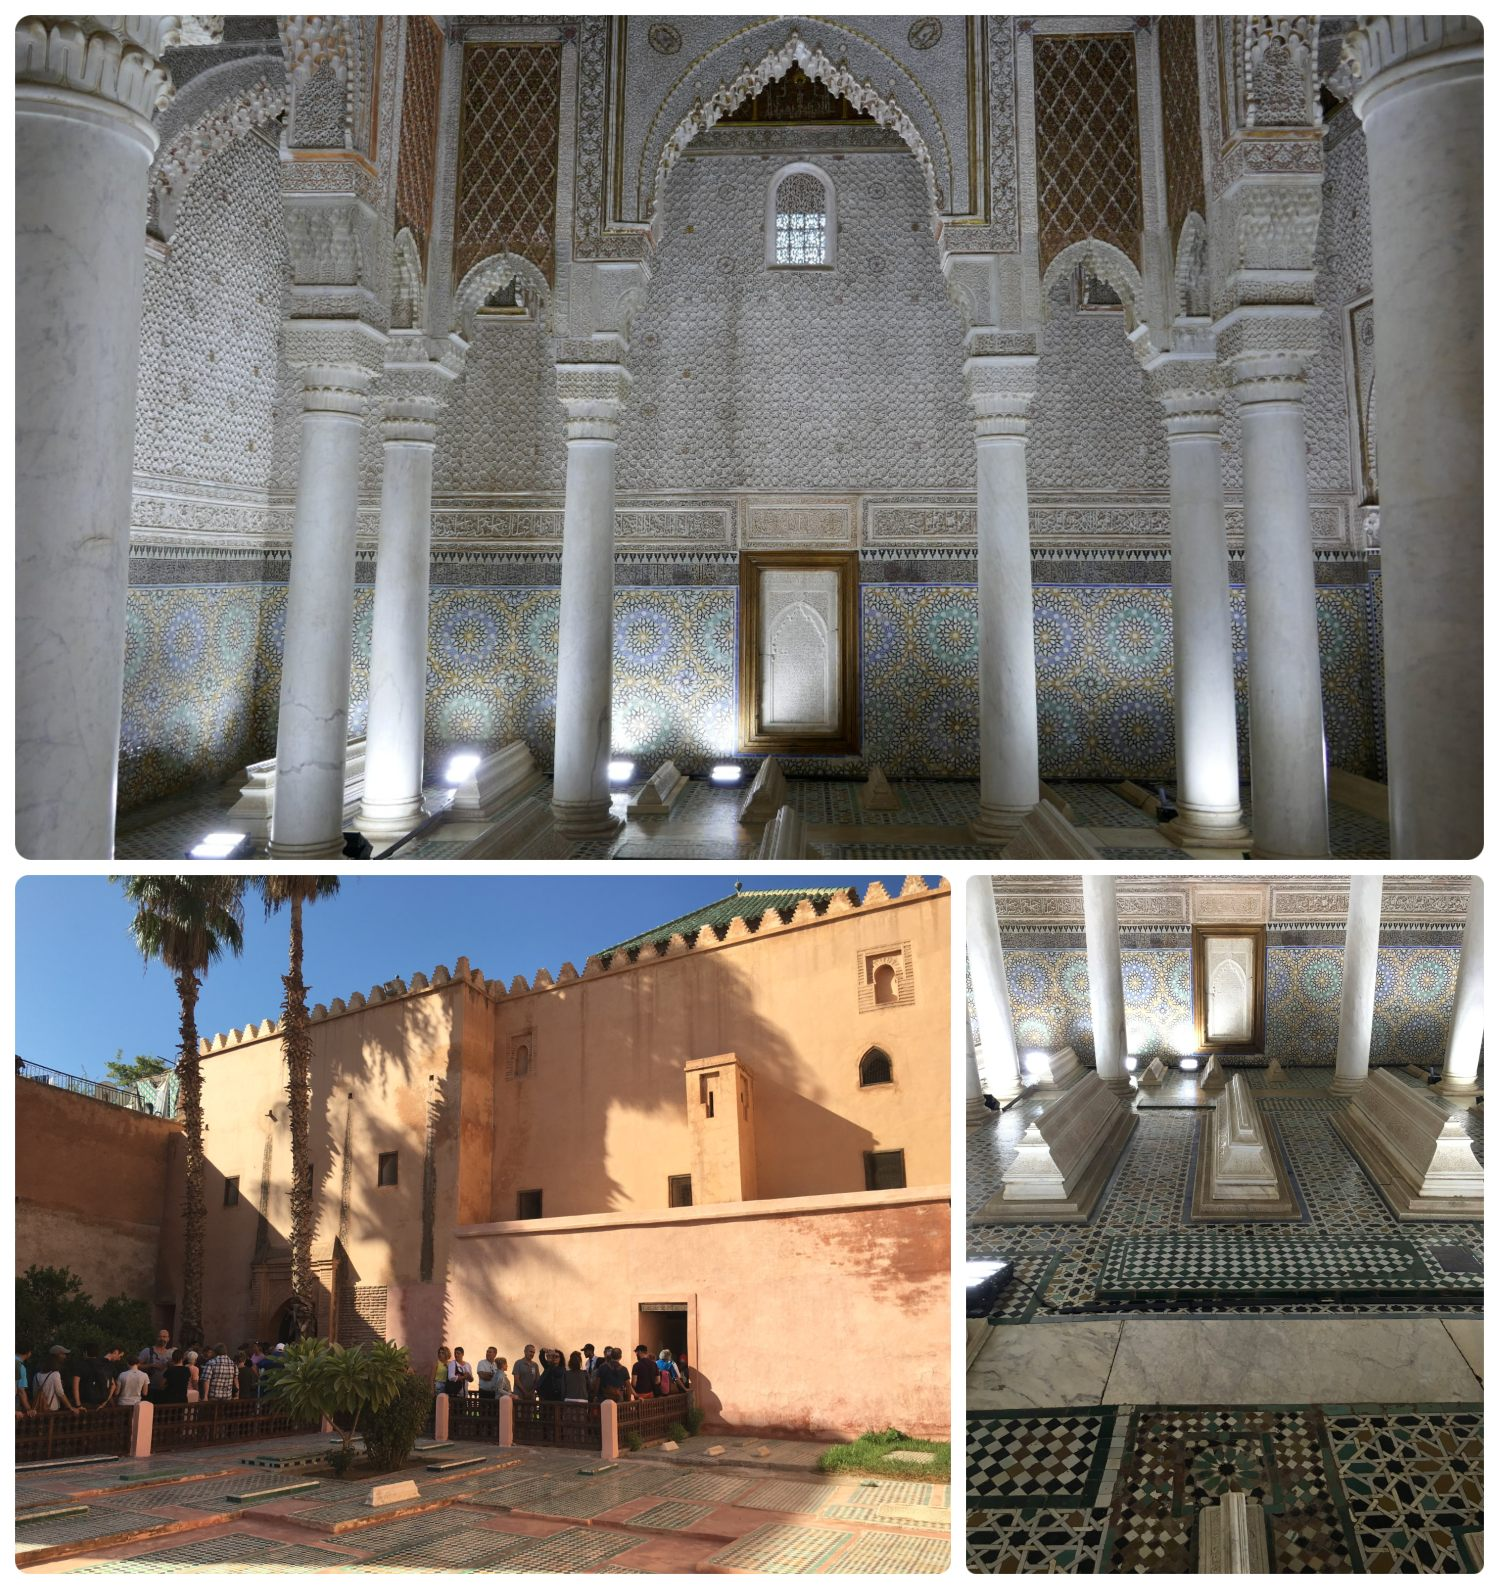 Saadien Tombs in the Medina (Old Town), Marrakech, Morocco. Inside is the most famous chamber (Chamber of the 12 Columns) and there's a queue to get a glimpse of it's beauty.